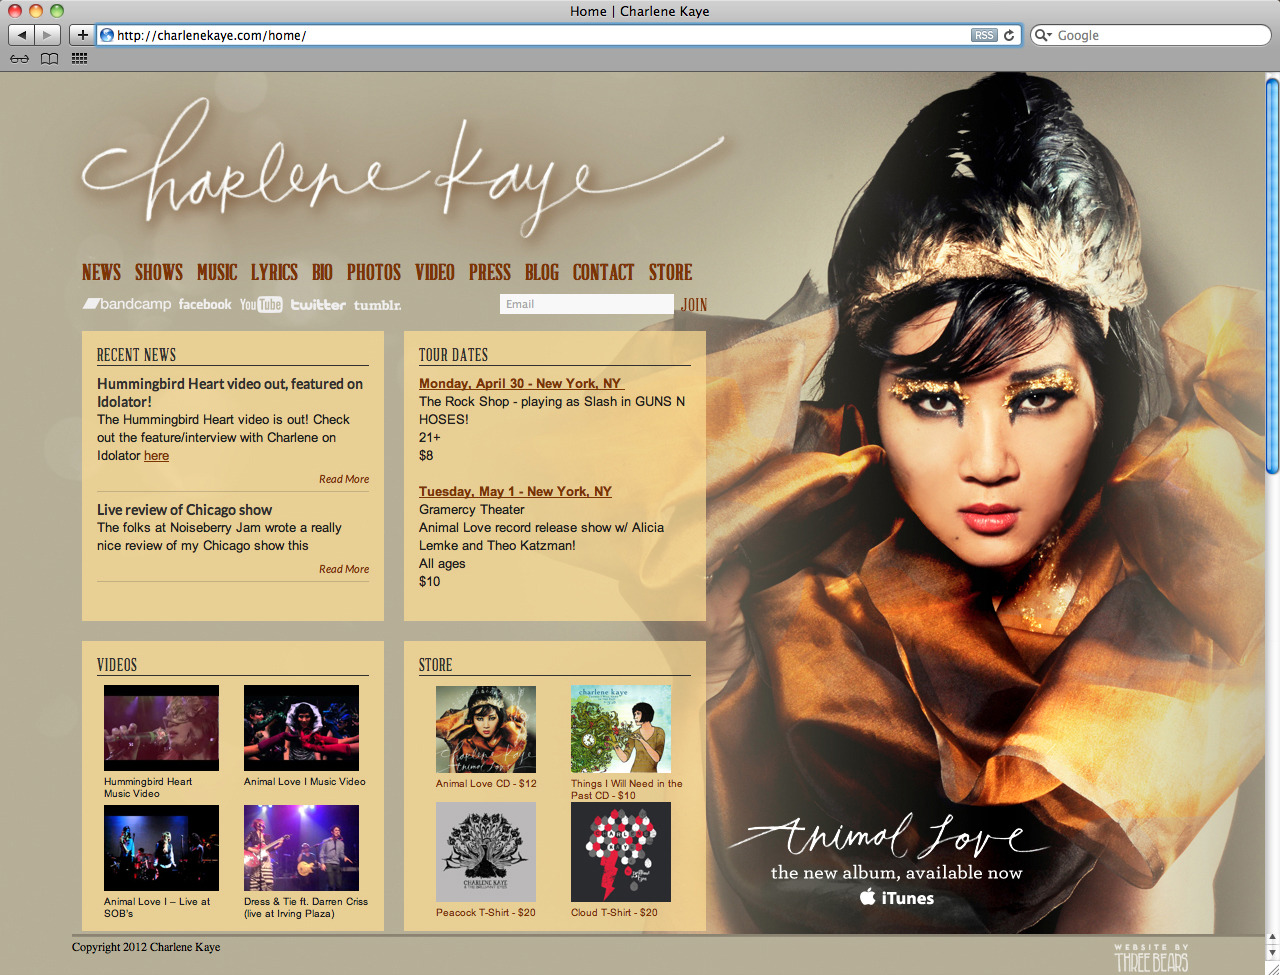 Just finished the new Charlene Kaye site! My very talented designer friend, Charlie Wagers, designed the site and I developed it. Charlene has recorded duets with Darren Criss (Glee), has been heard on the show Chuck, sold-out national tours, and most recently raised over $30k on Kickstarter for her newest album, Animal Love. Her new album launches May 1st, and to coincide with her release she wanted a new updated site. Charlie did the page design and I developed the site in WordPress. The site has a few fun features like a dashboard style home page, custom scrollbars, and quick filtering for the lyrics section. Check out her new site and new album which releases tomorrow!